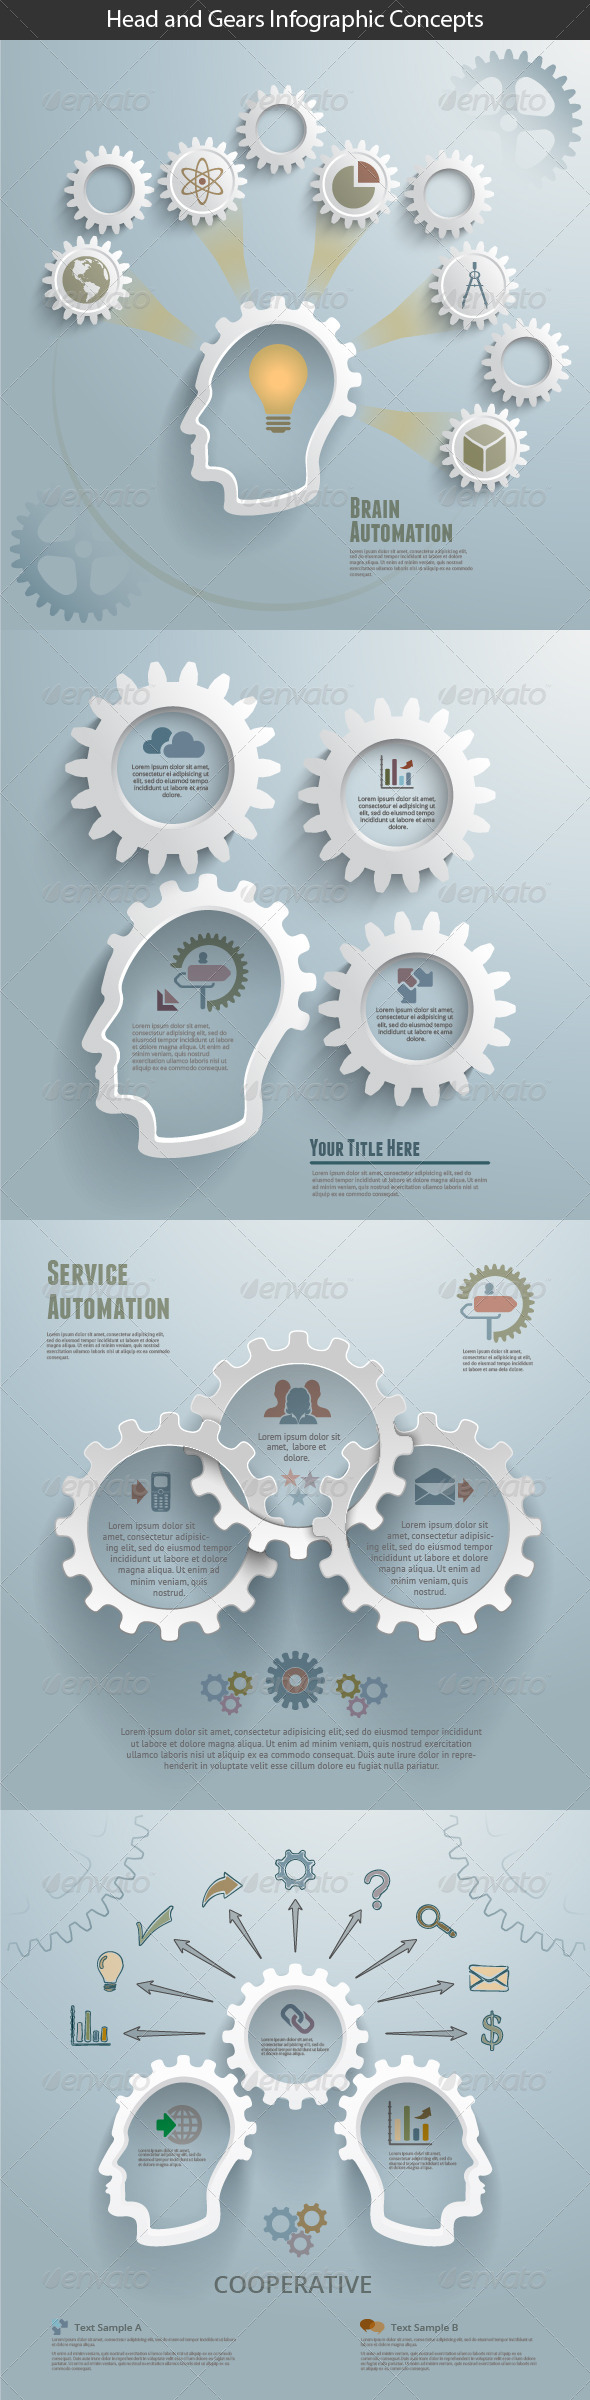 GraphicRiver Head and Gears Infographic Concepts 7351027